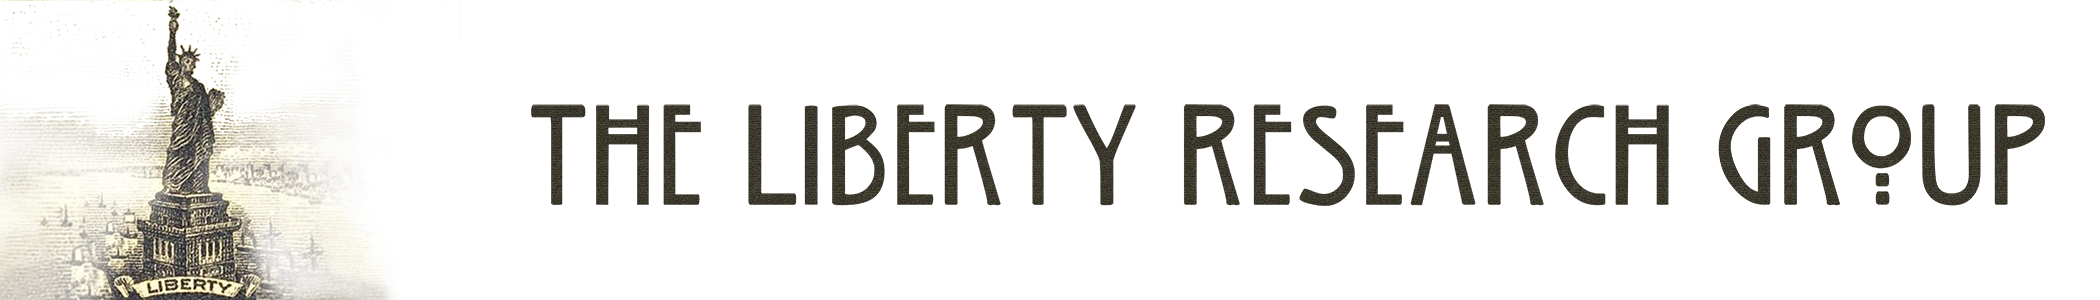 The Liberty Research Group